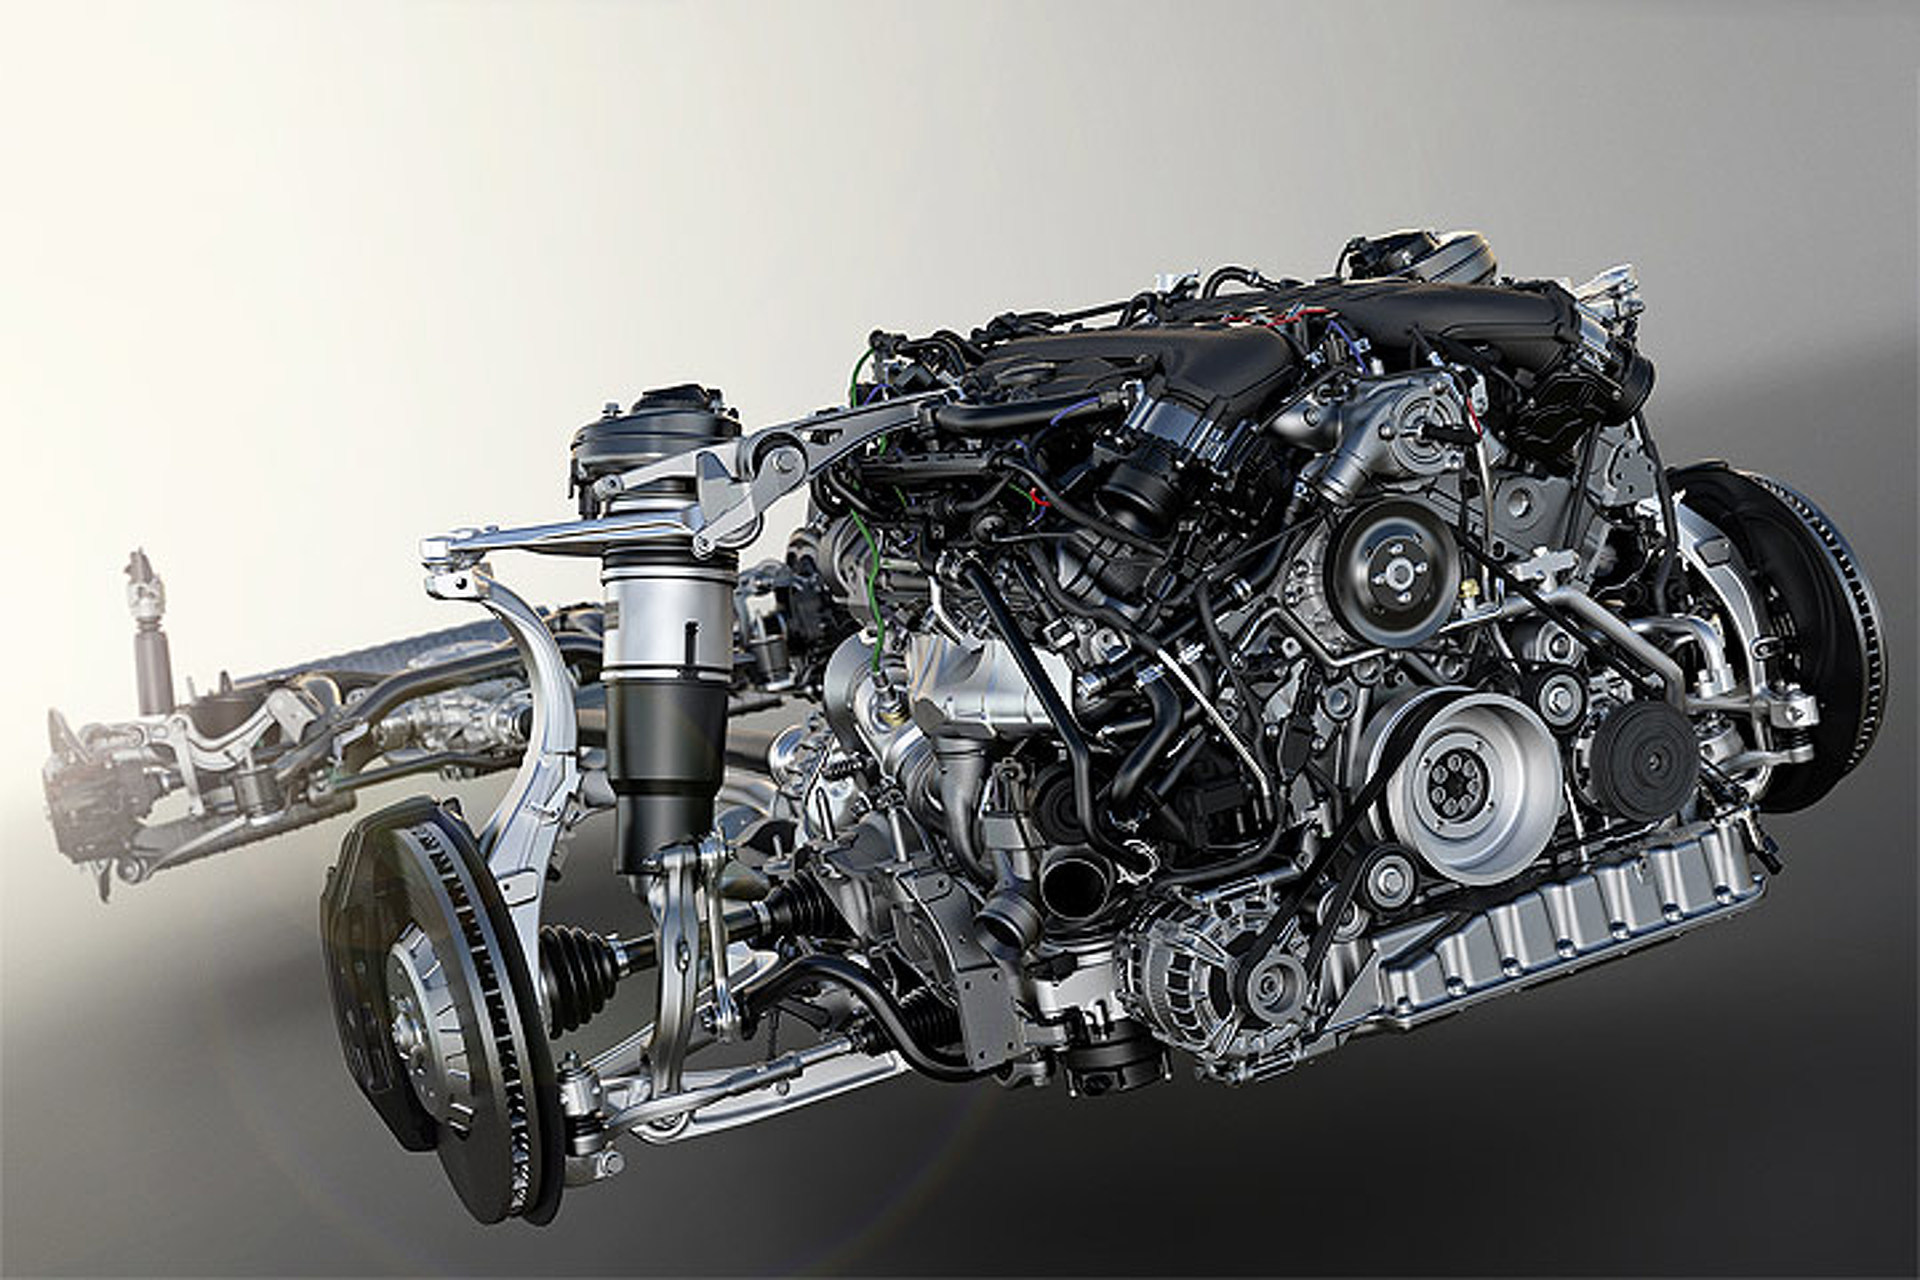 Audi W12 Engine Diagram Trusted Wiring Diagrams For Cars Free Download W